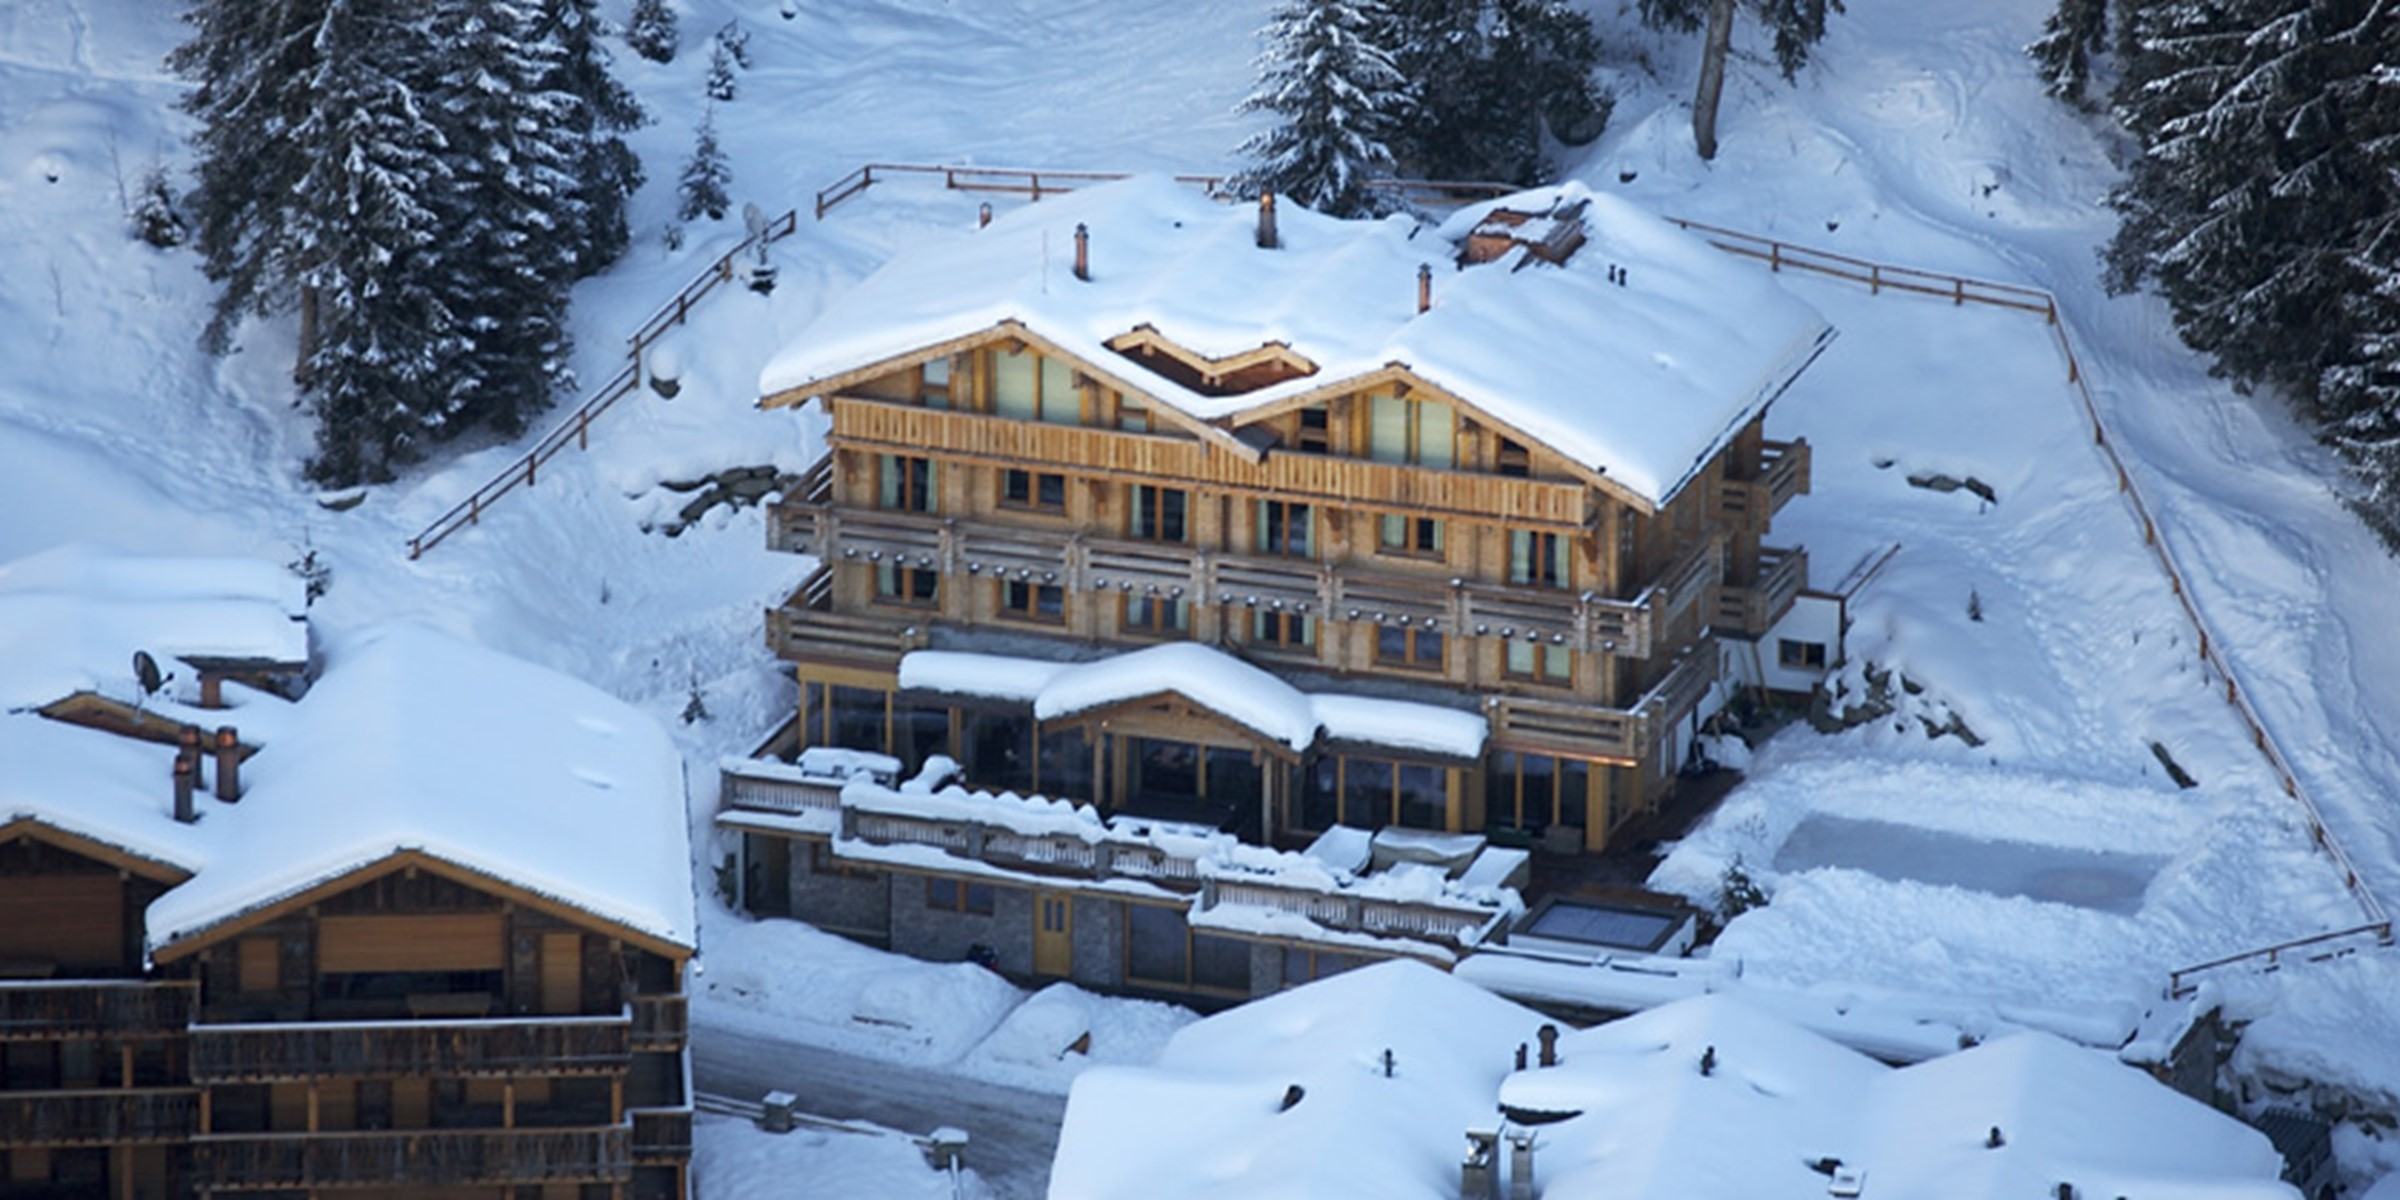 The Lodge Aerial